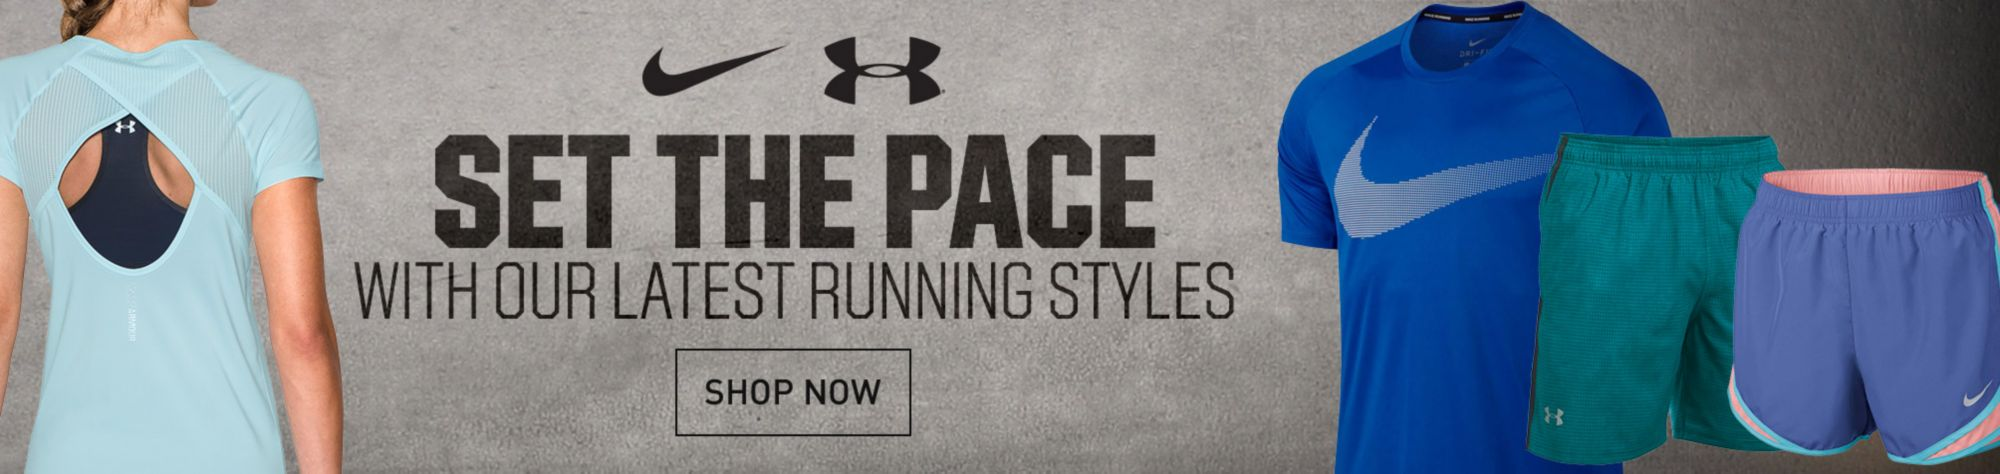 Men's and Women's Nike & UA Running Apparel